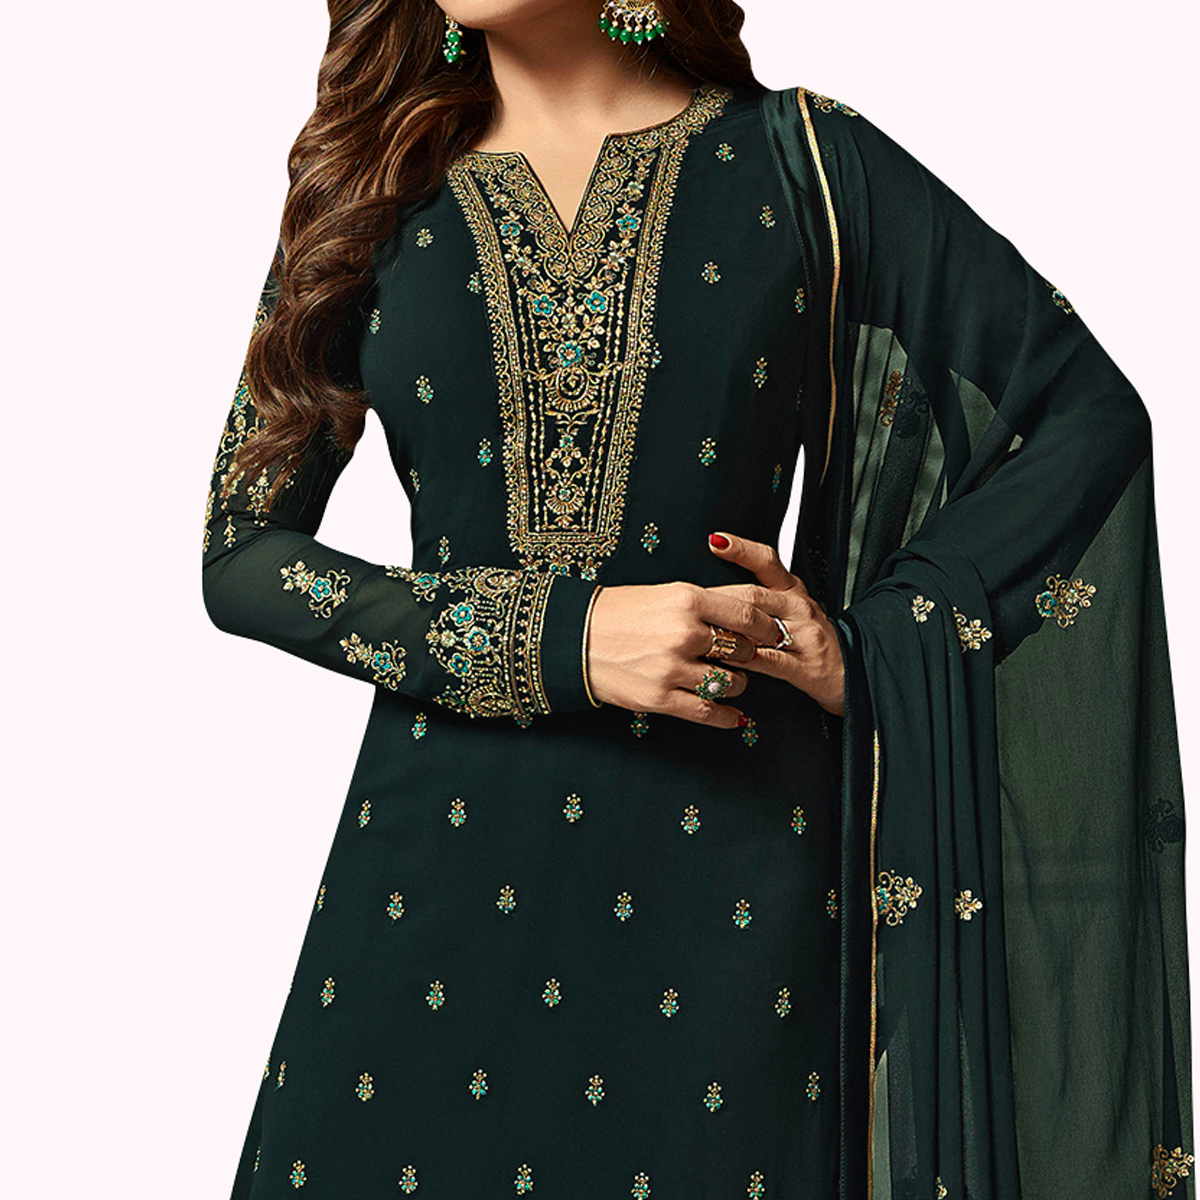 Captivating Dark Navy Blue Colored Party Wear Embroidered Georgette Salwar Suit